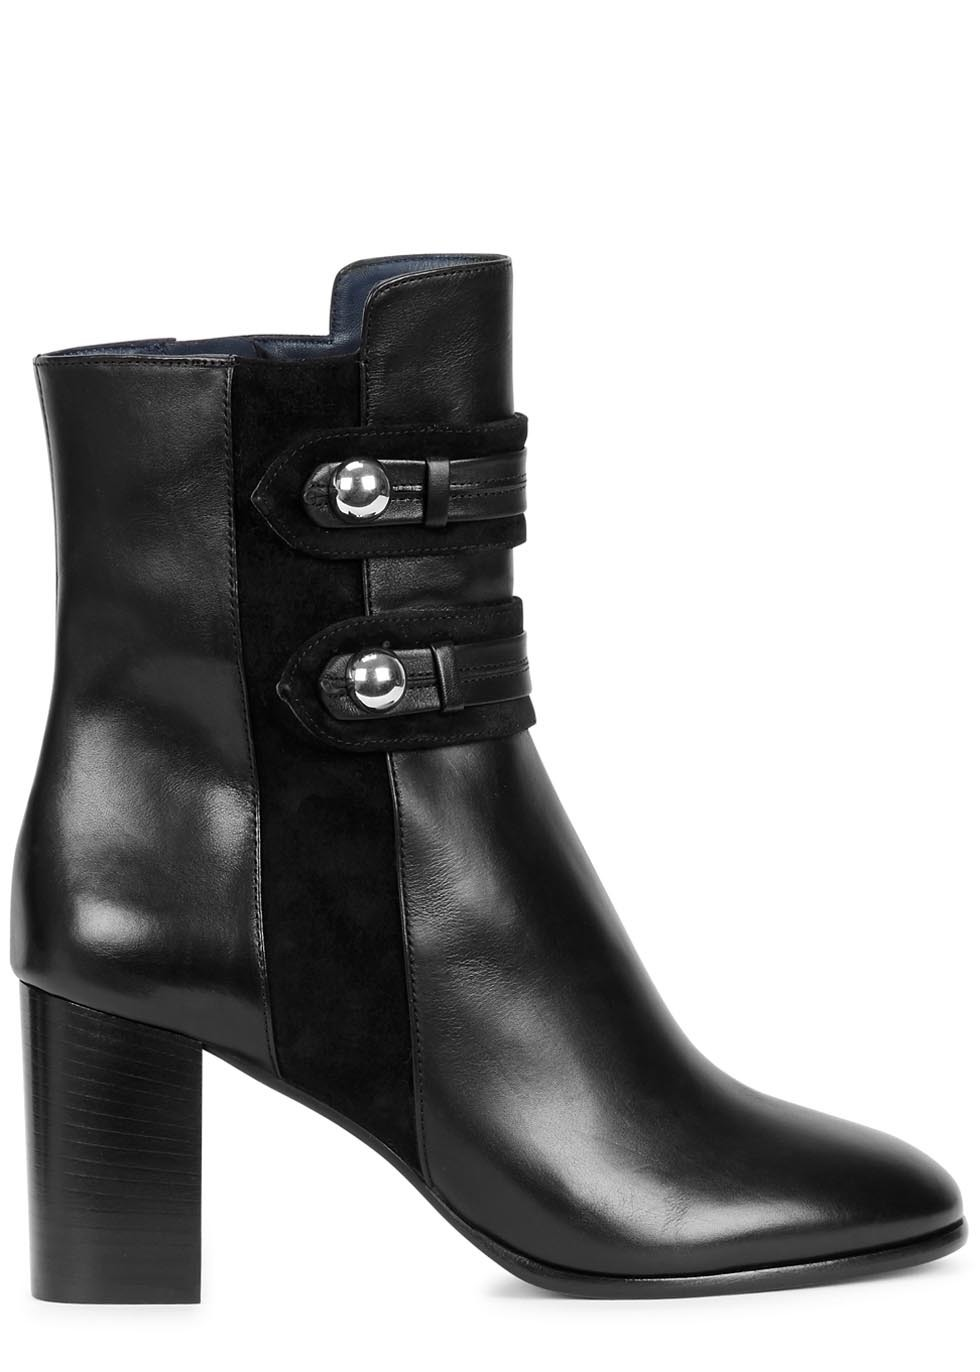 Brandebourg Black Leather Ankle Boots - predominant colour: black; occasions: casual, creative work; material: leather; heel height: high; embellishment: studs; heel: block; toe: round toe; boot length: ankle boot; style: standard; finish: plain; pattern: plain; season: a/w 2015; wardrobe: highlight